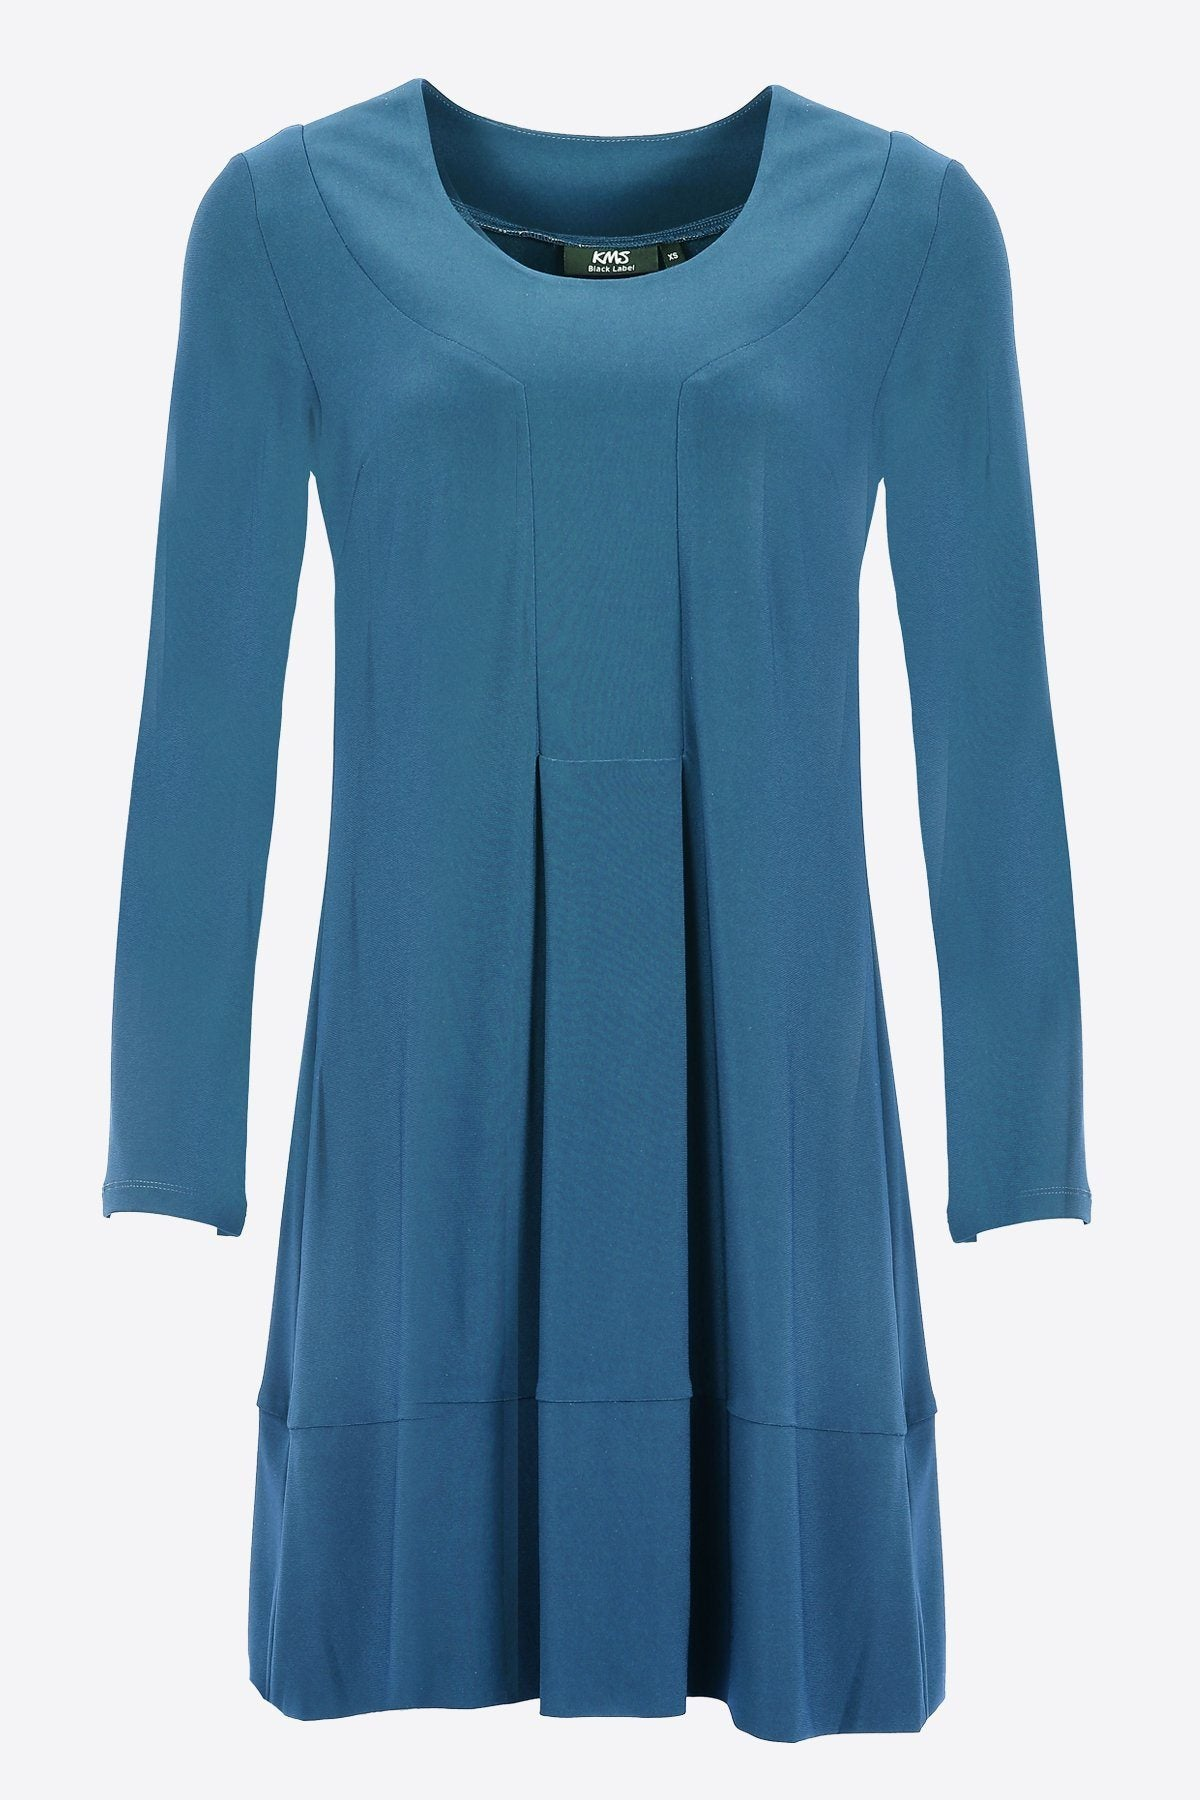 Long Tunic Top - Women's Clothing -ROSARINI